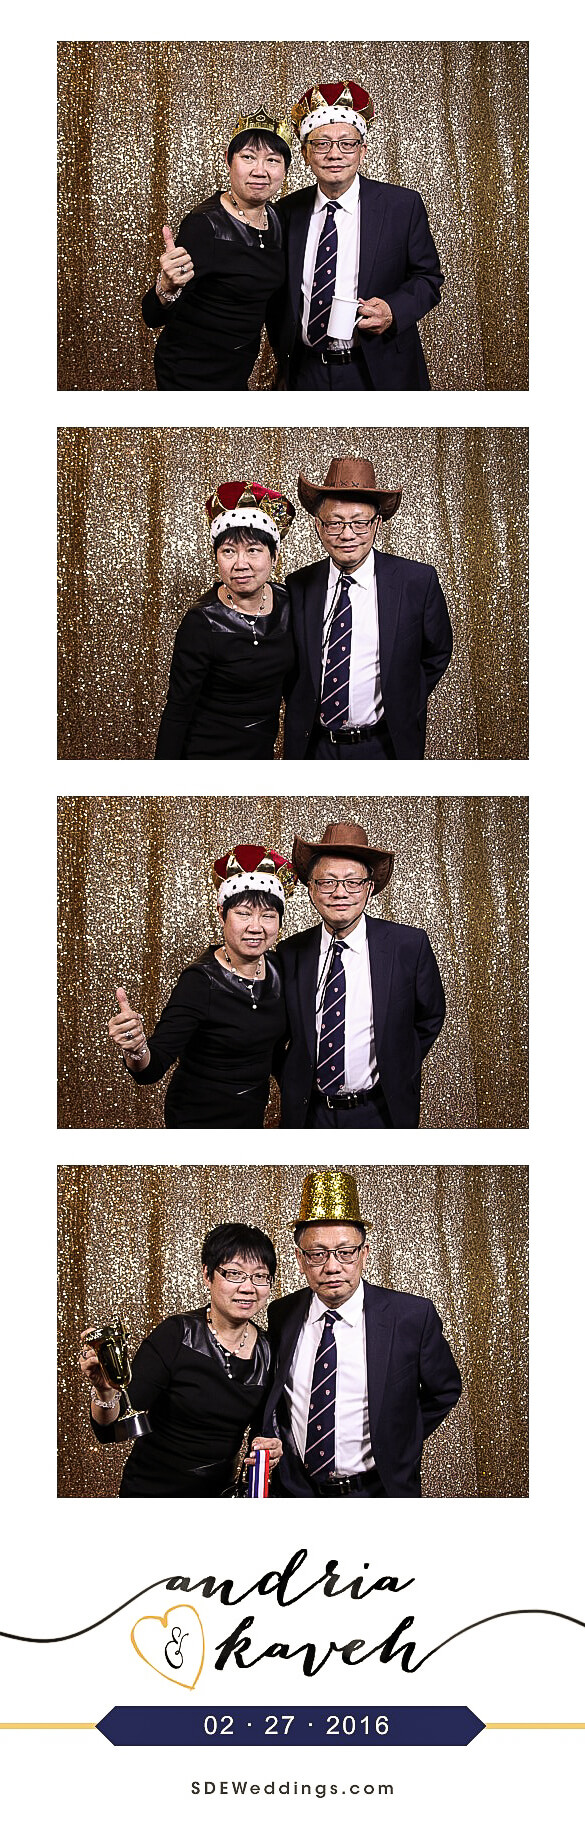 Toronto 99 Sudbury Wedding Photo Booth Rental 2